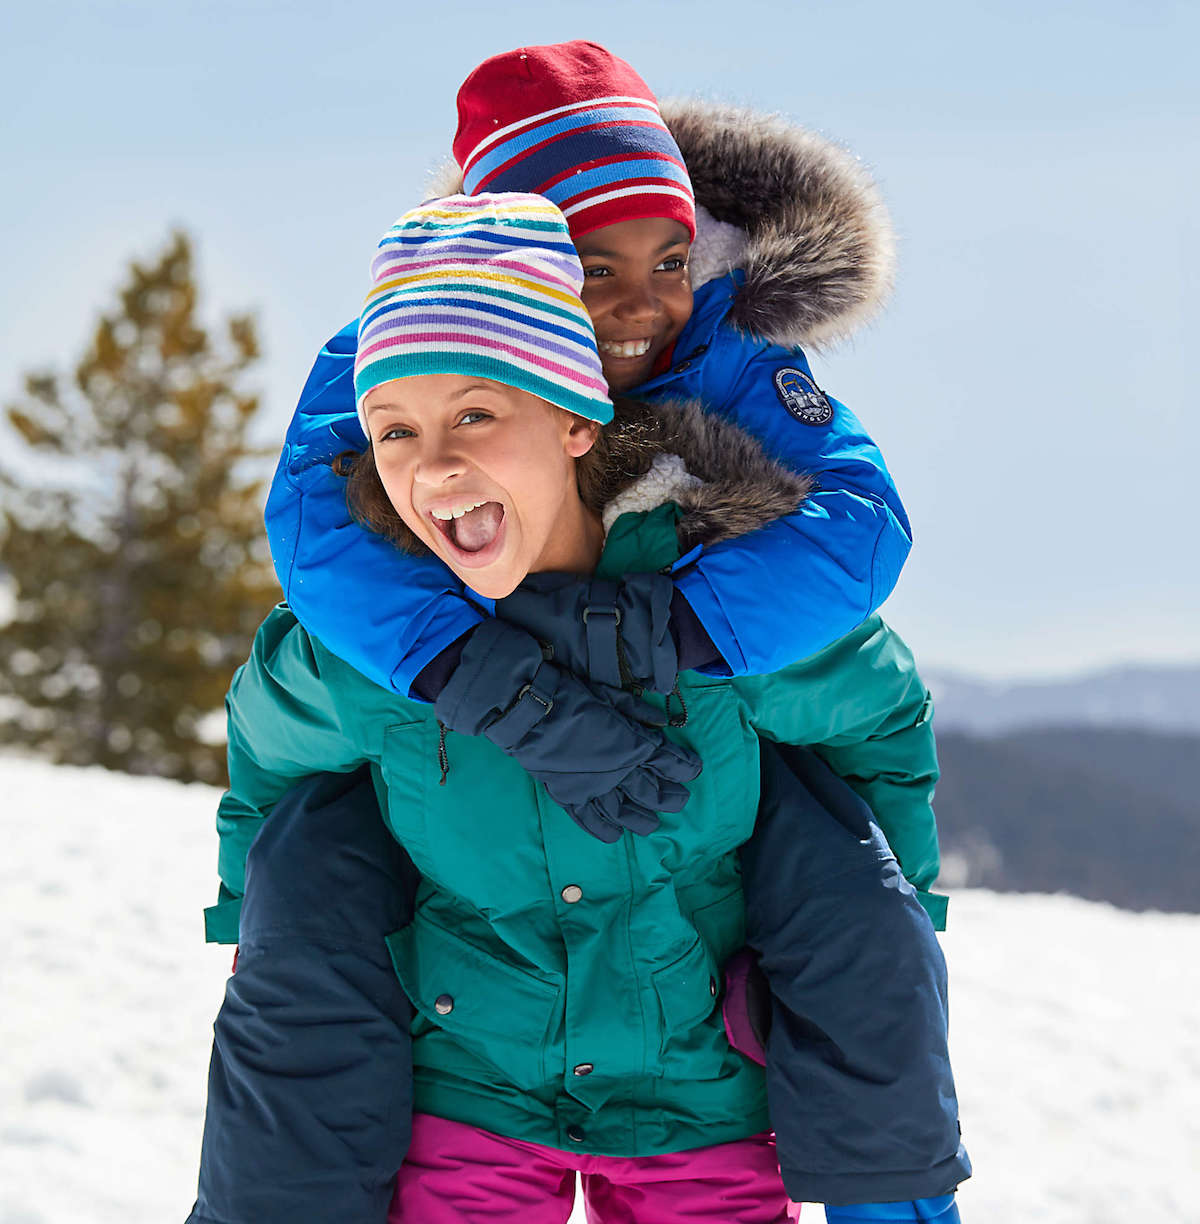 kids wearing colorful best kids winter coats lands end jackets in the snow